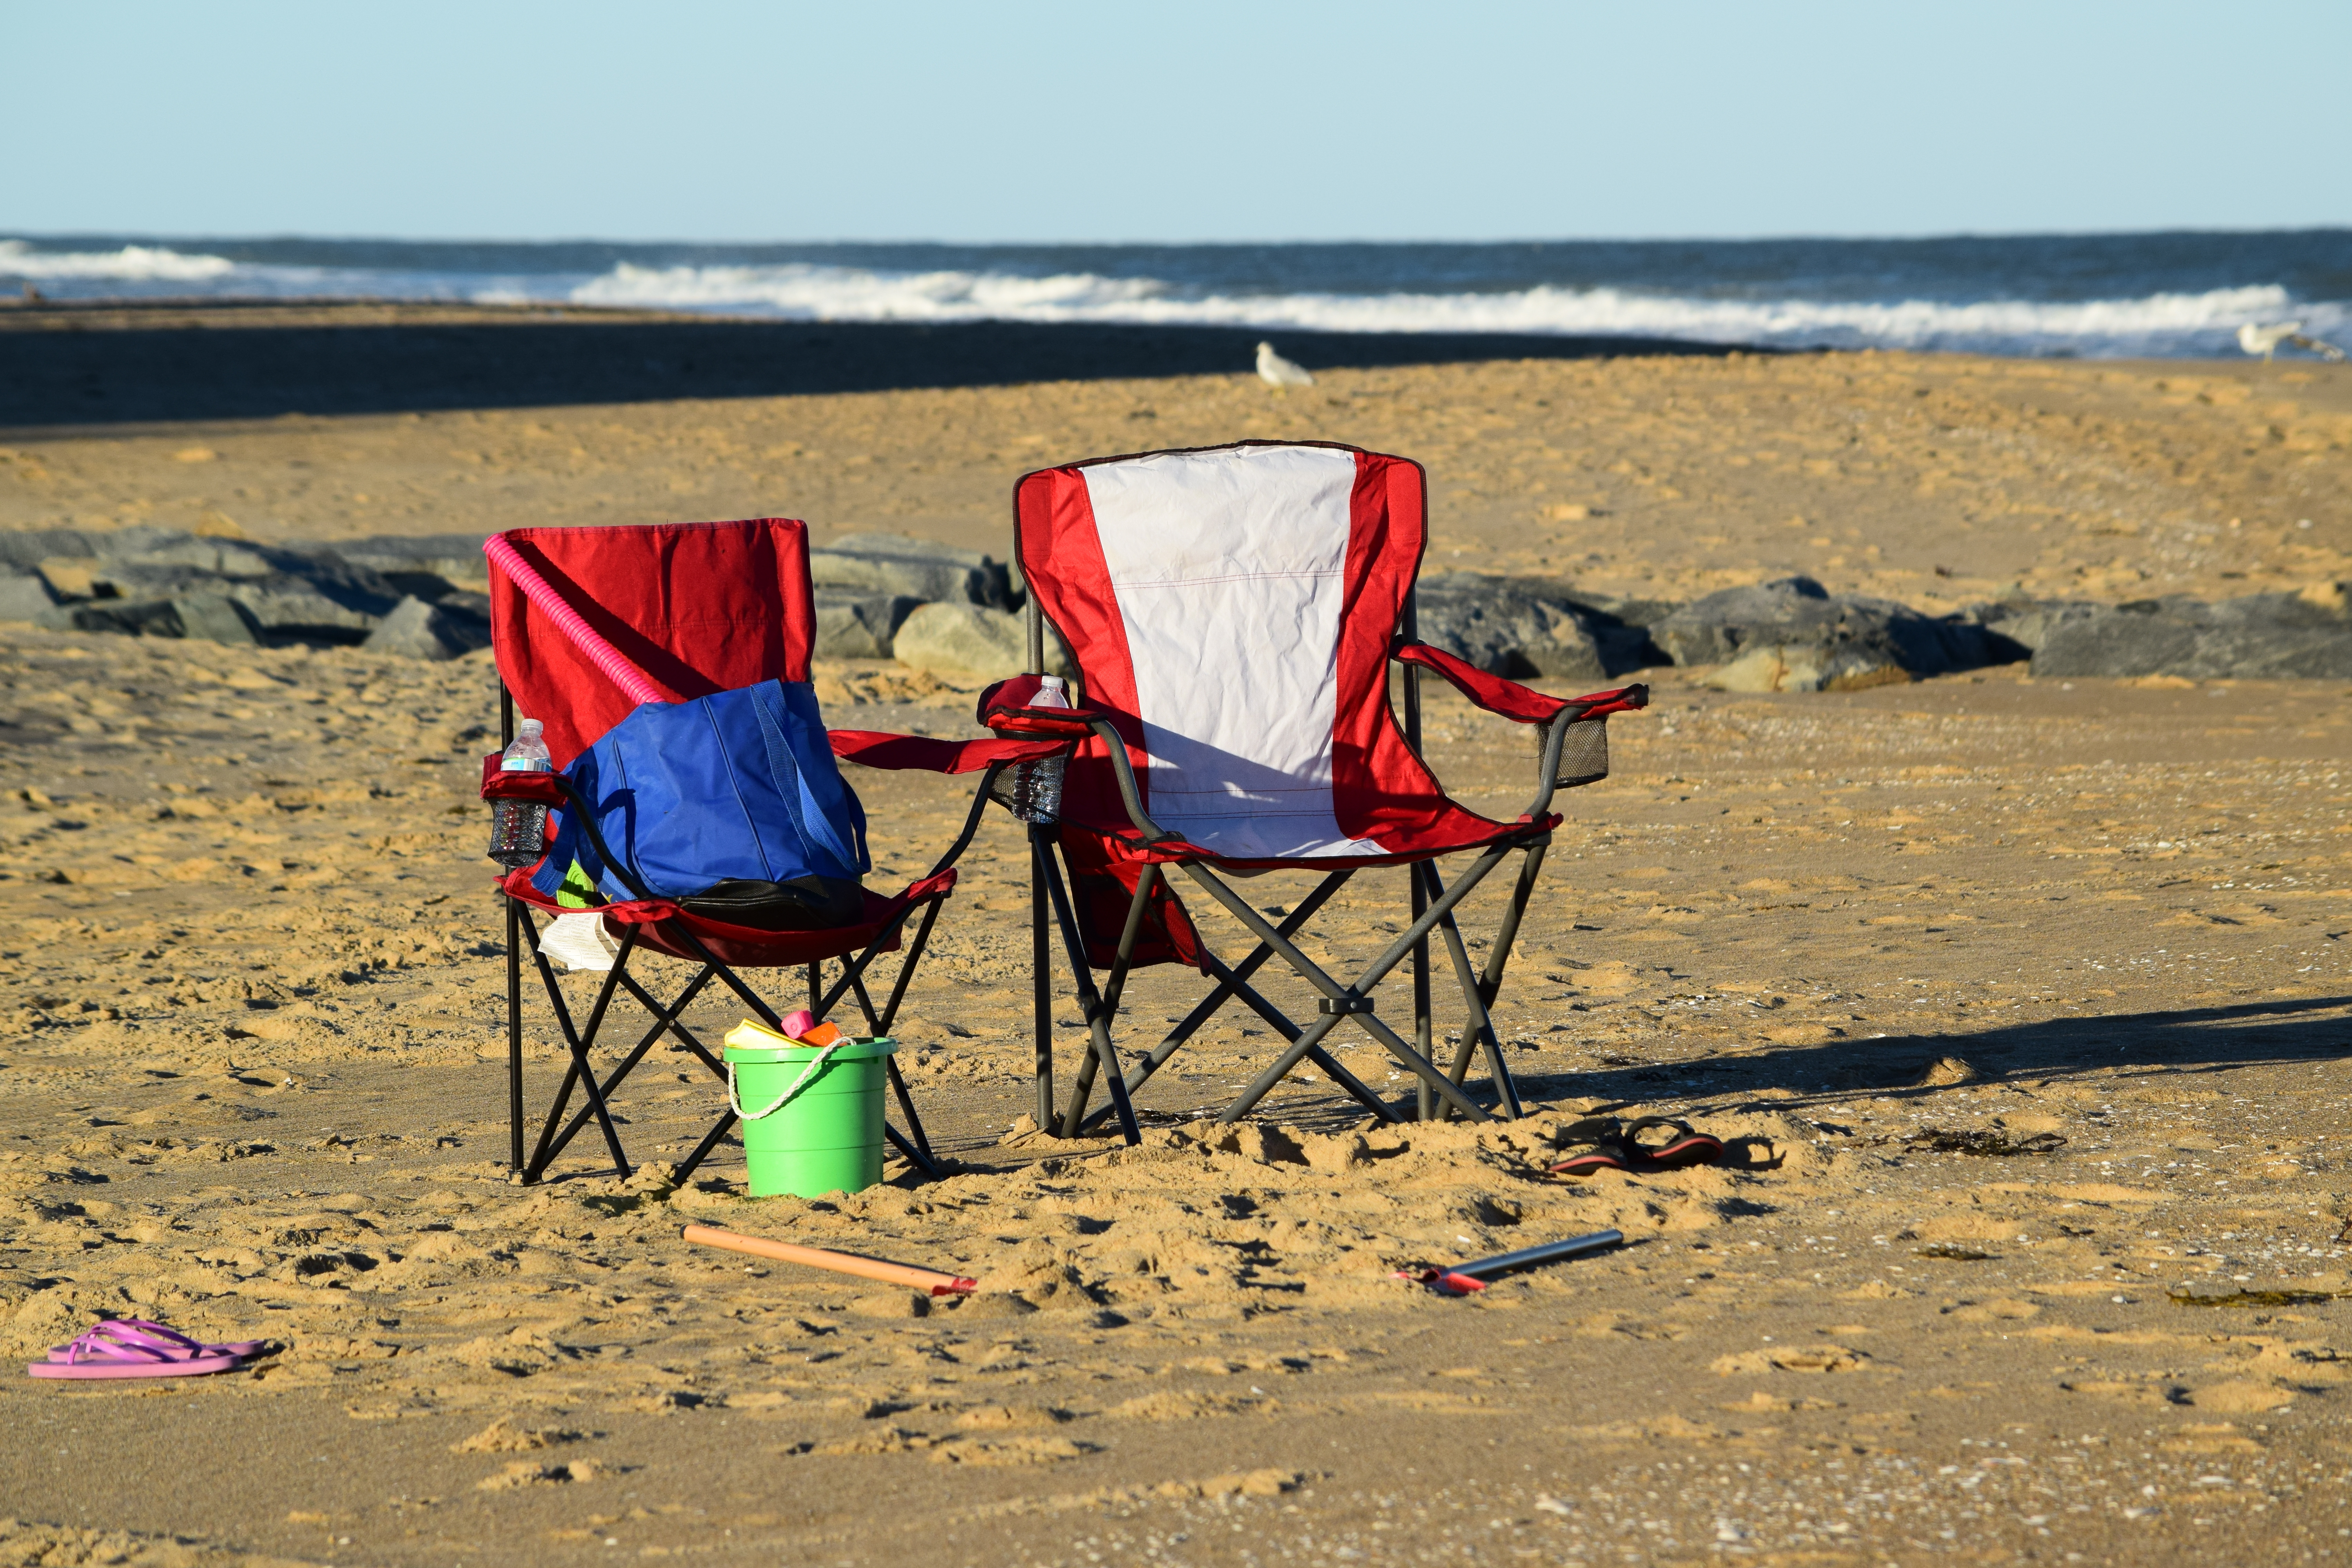 Two chairs set up on the beach.